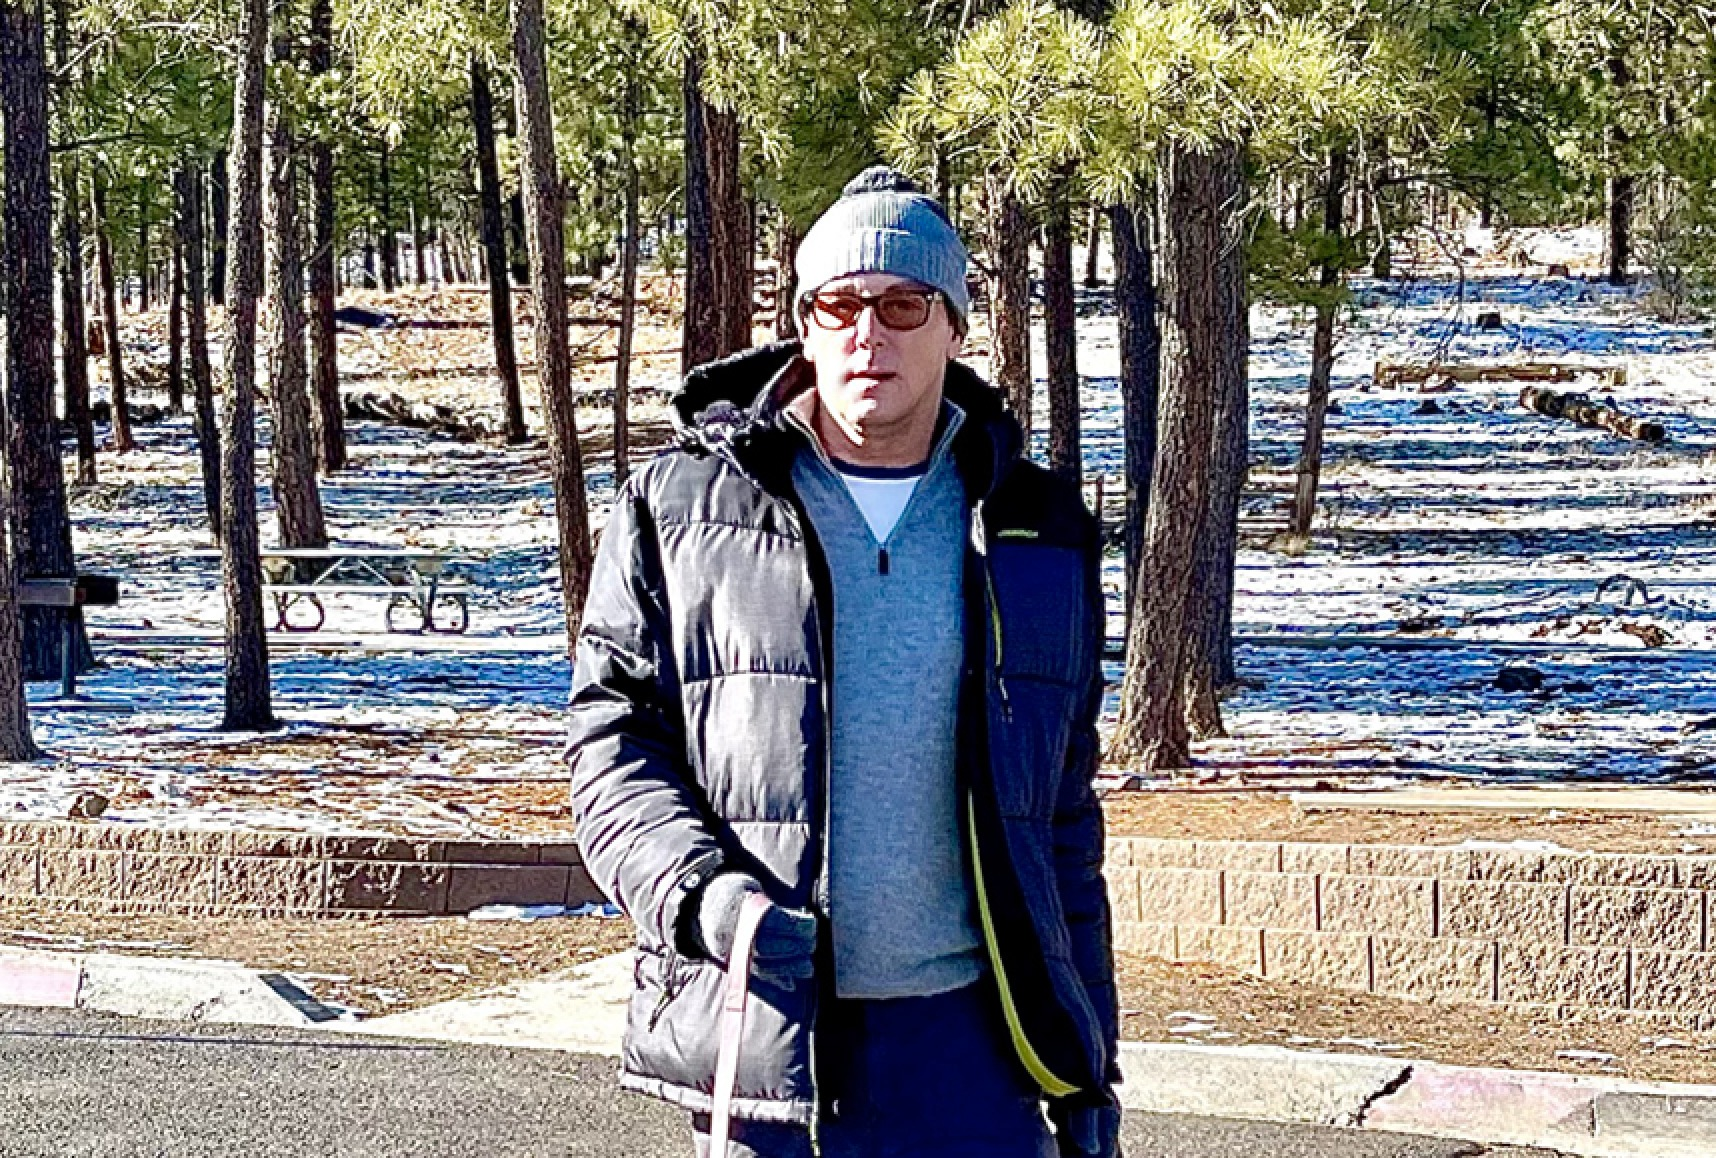 """Snow-biz"" News! Sean Borg Spotted in Flagstaff Arizona on New Year's Day Walking Eli and Olive"